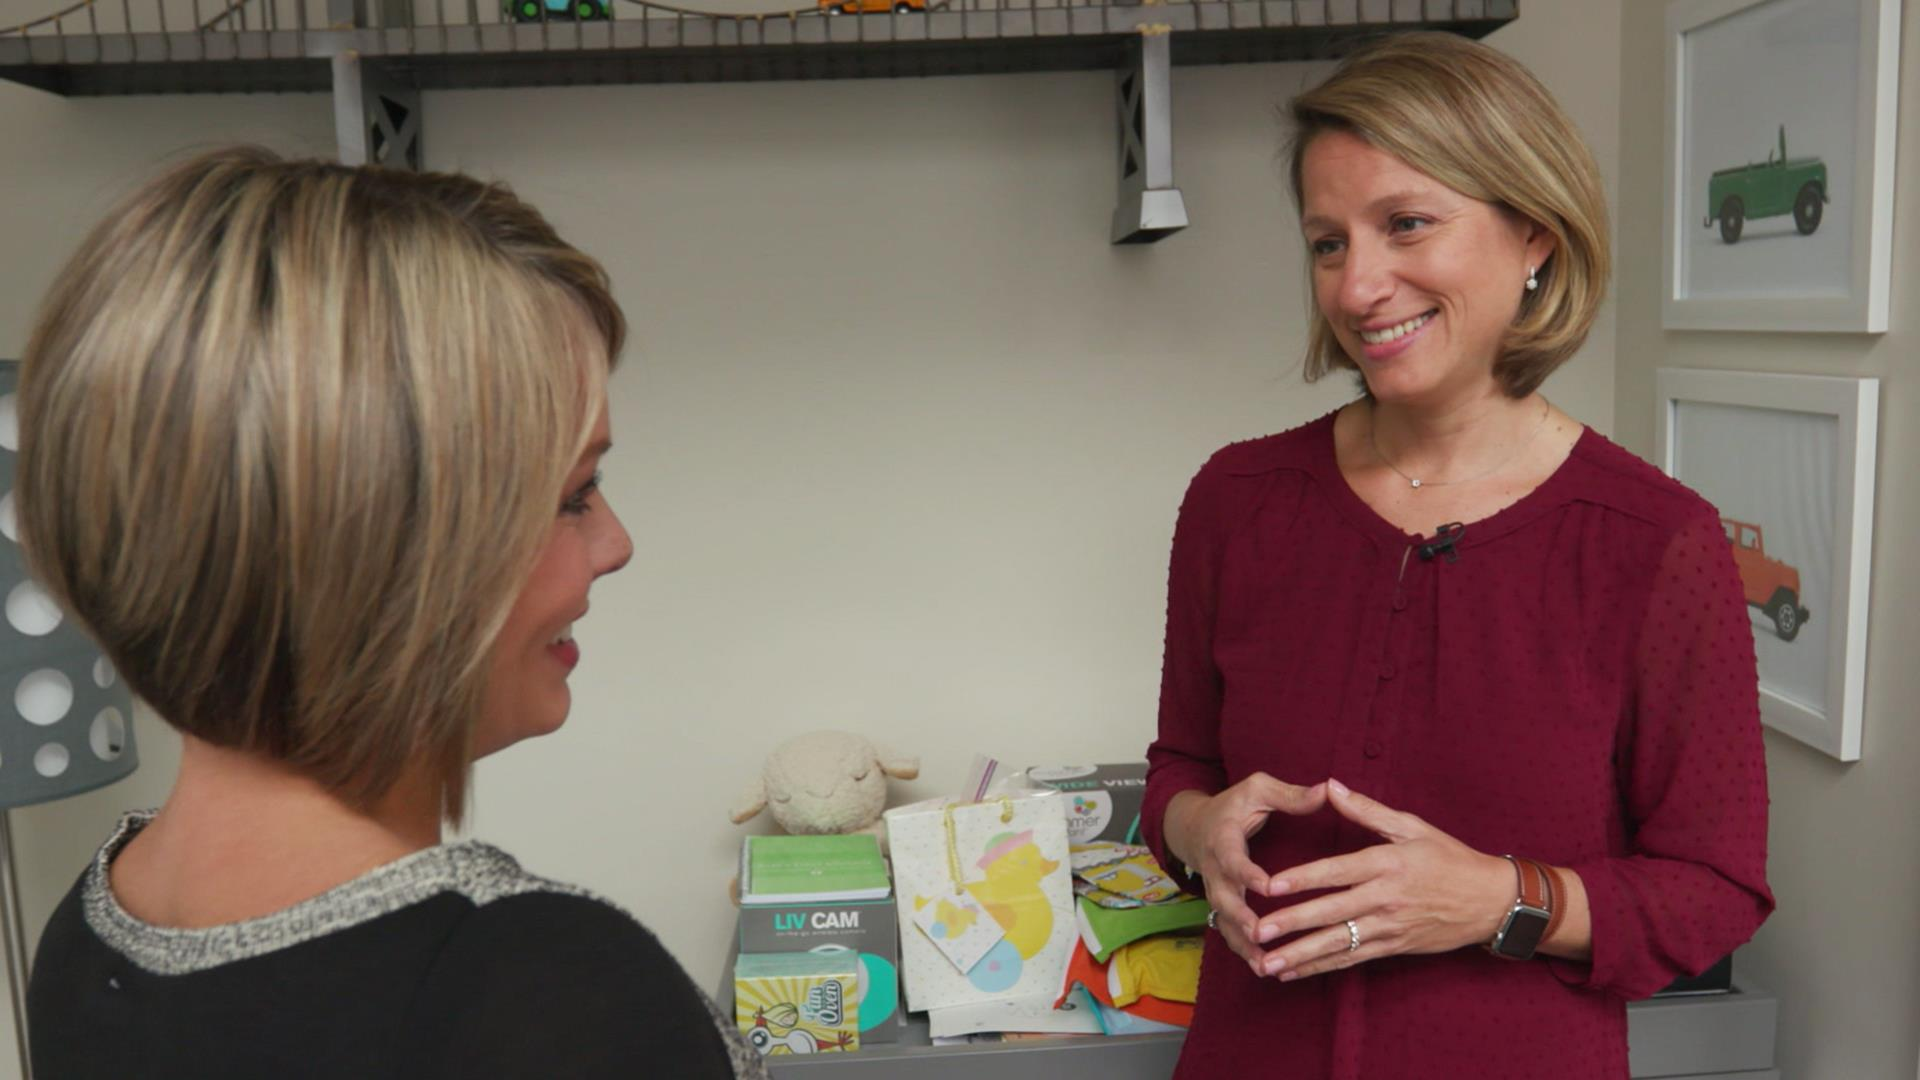 How Long Should You Swaddle Your Baby Dylan Dreyer